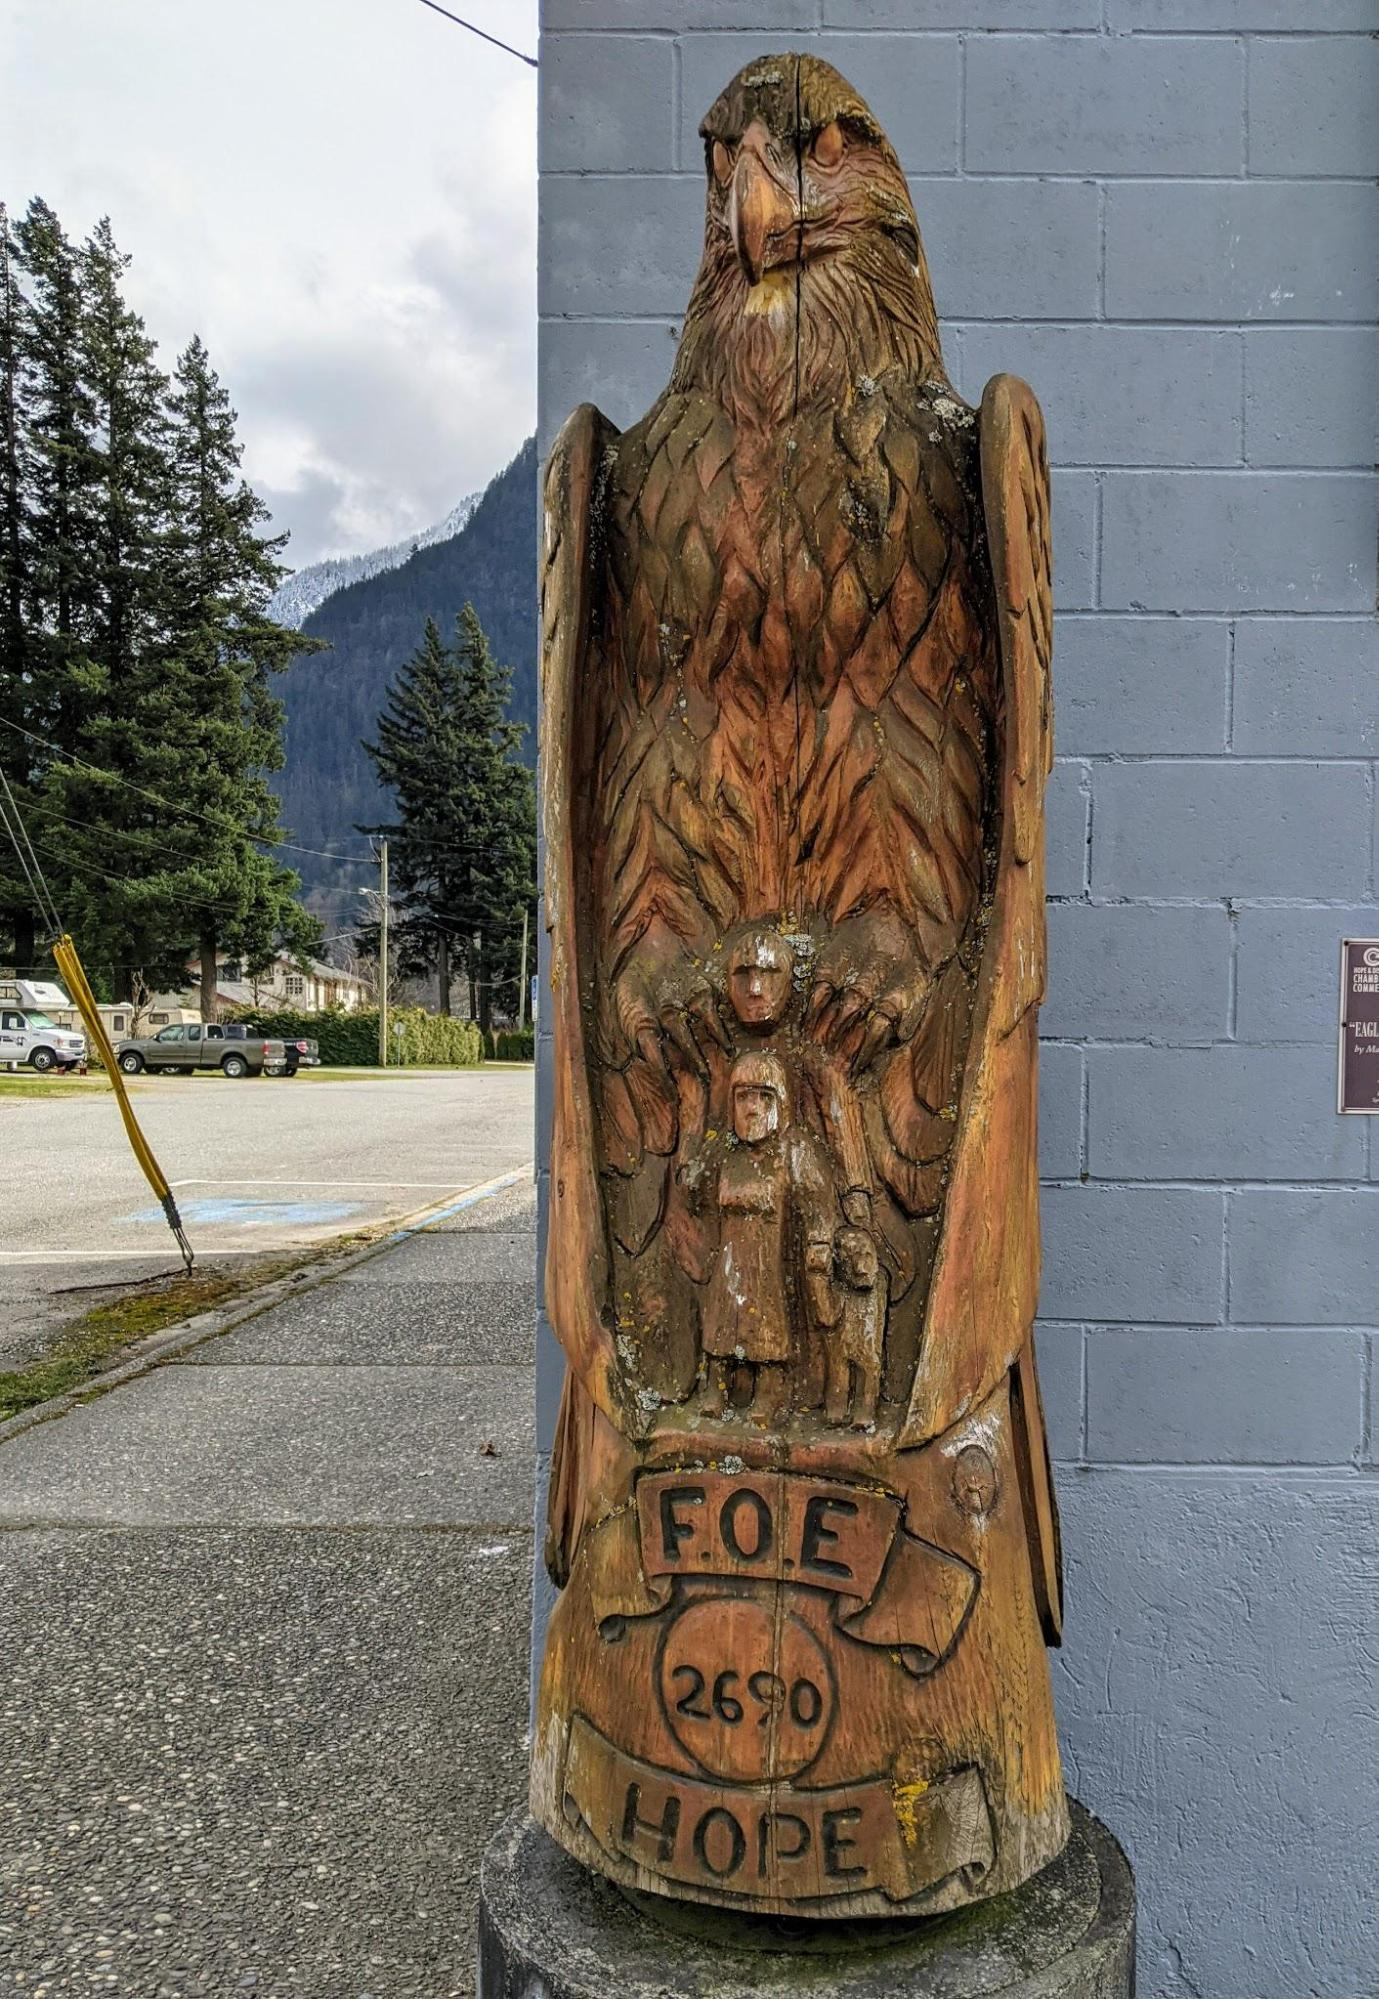 Chainsaw carving by master carver Pete Ryan of a large eagle sitting on a man's shoulders sheltering the man and his family with it's wings. Carving on display in the town of Hope, British Columbia, Canada